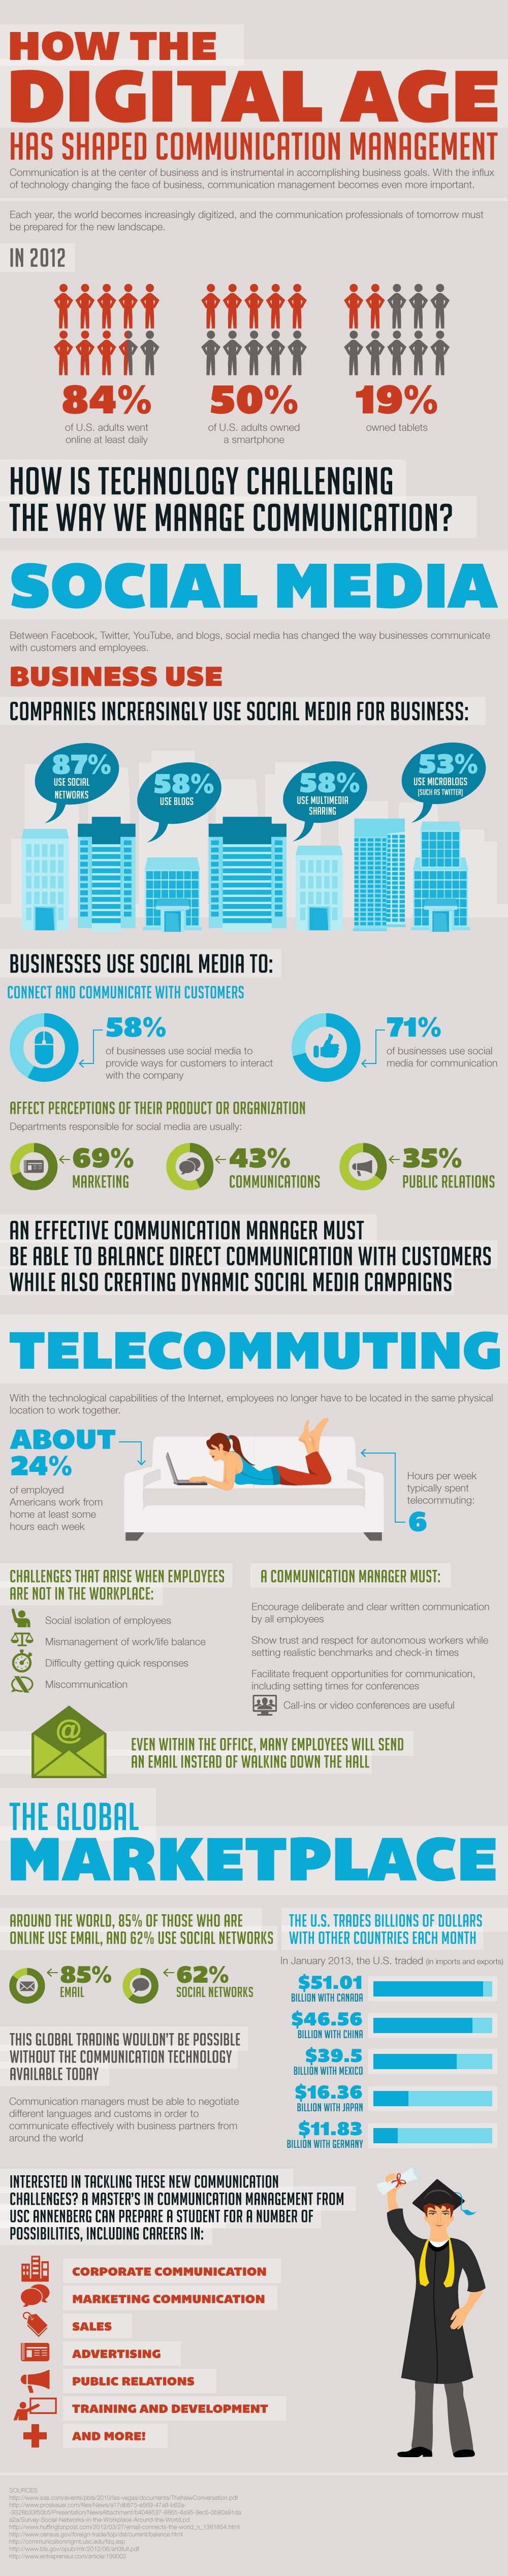 Sizing Up Your Online Communications Strategy (Infographic)